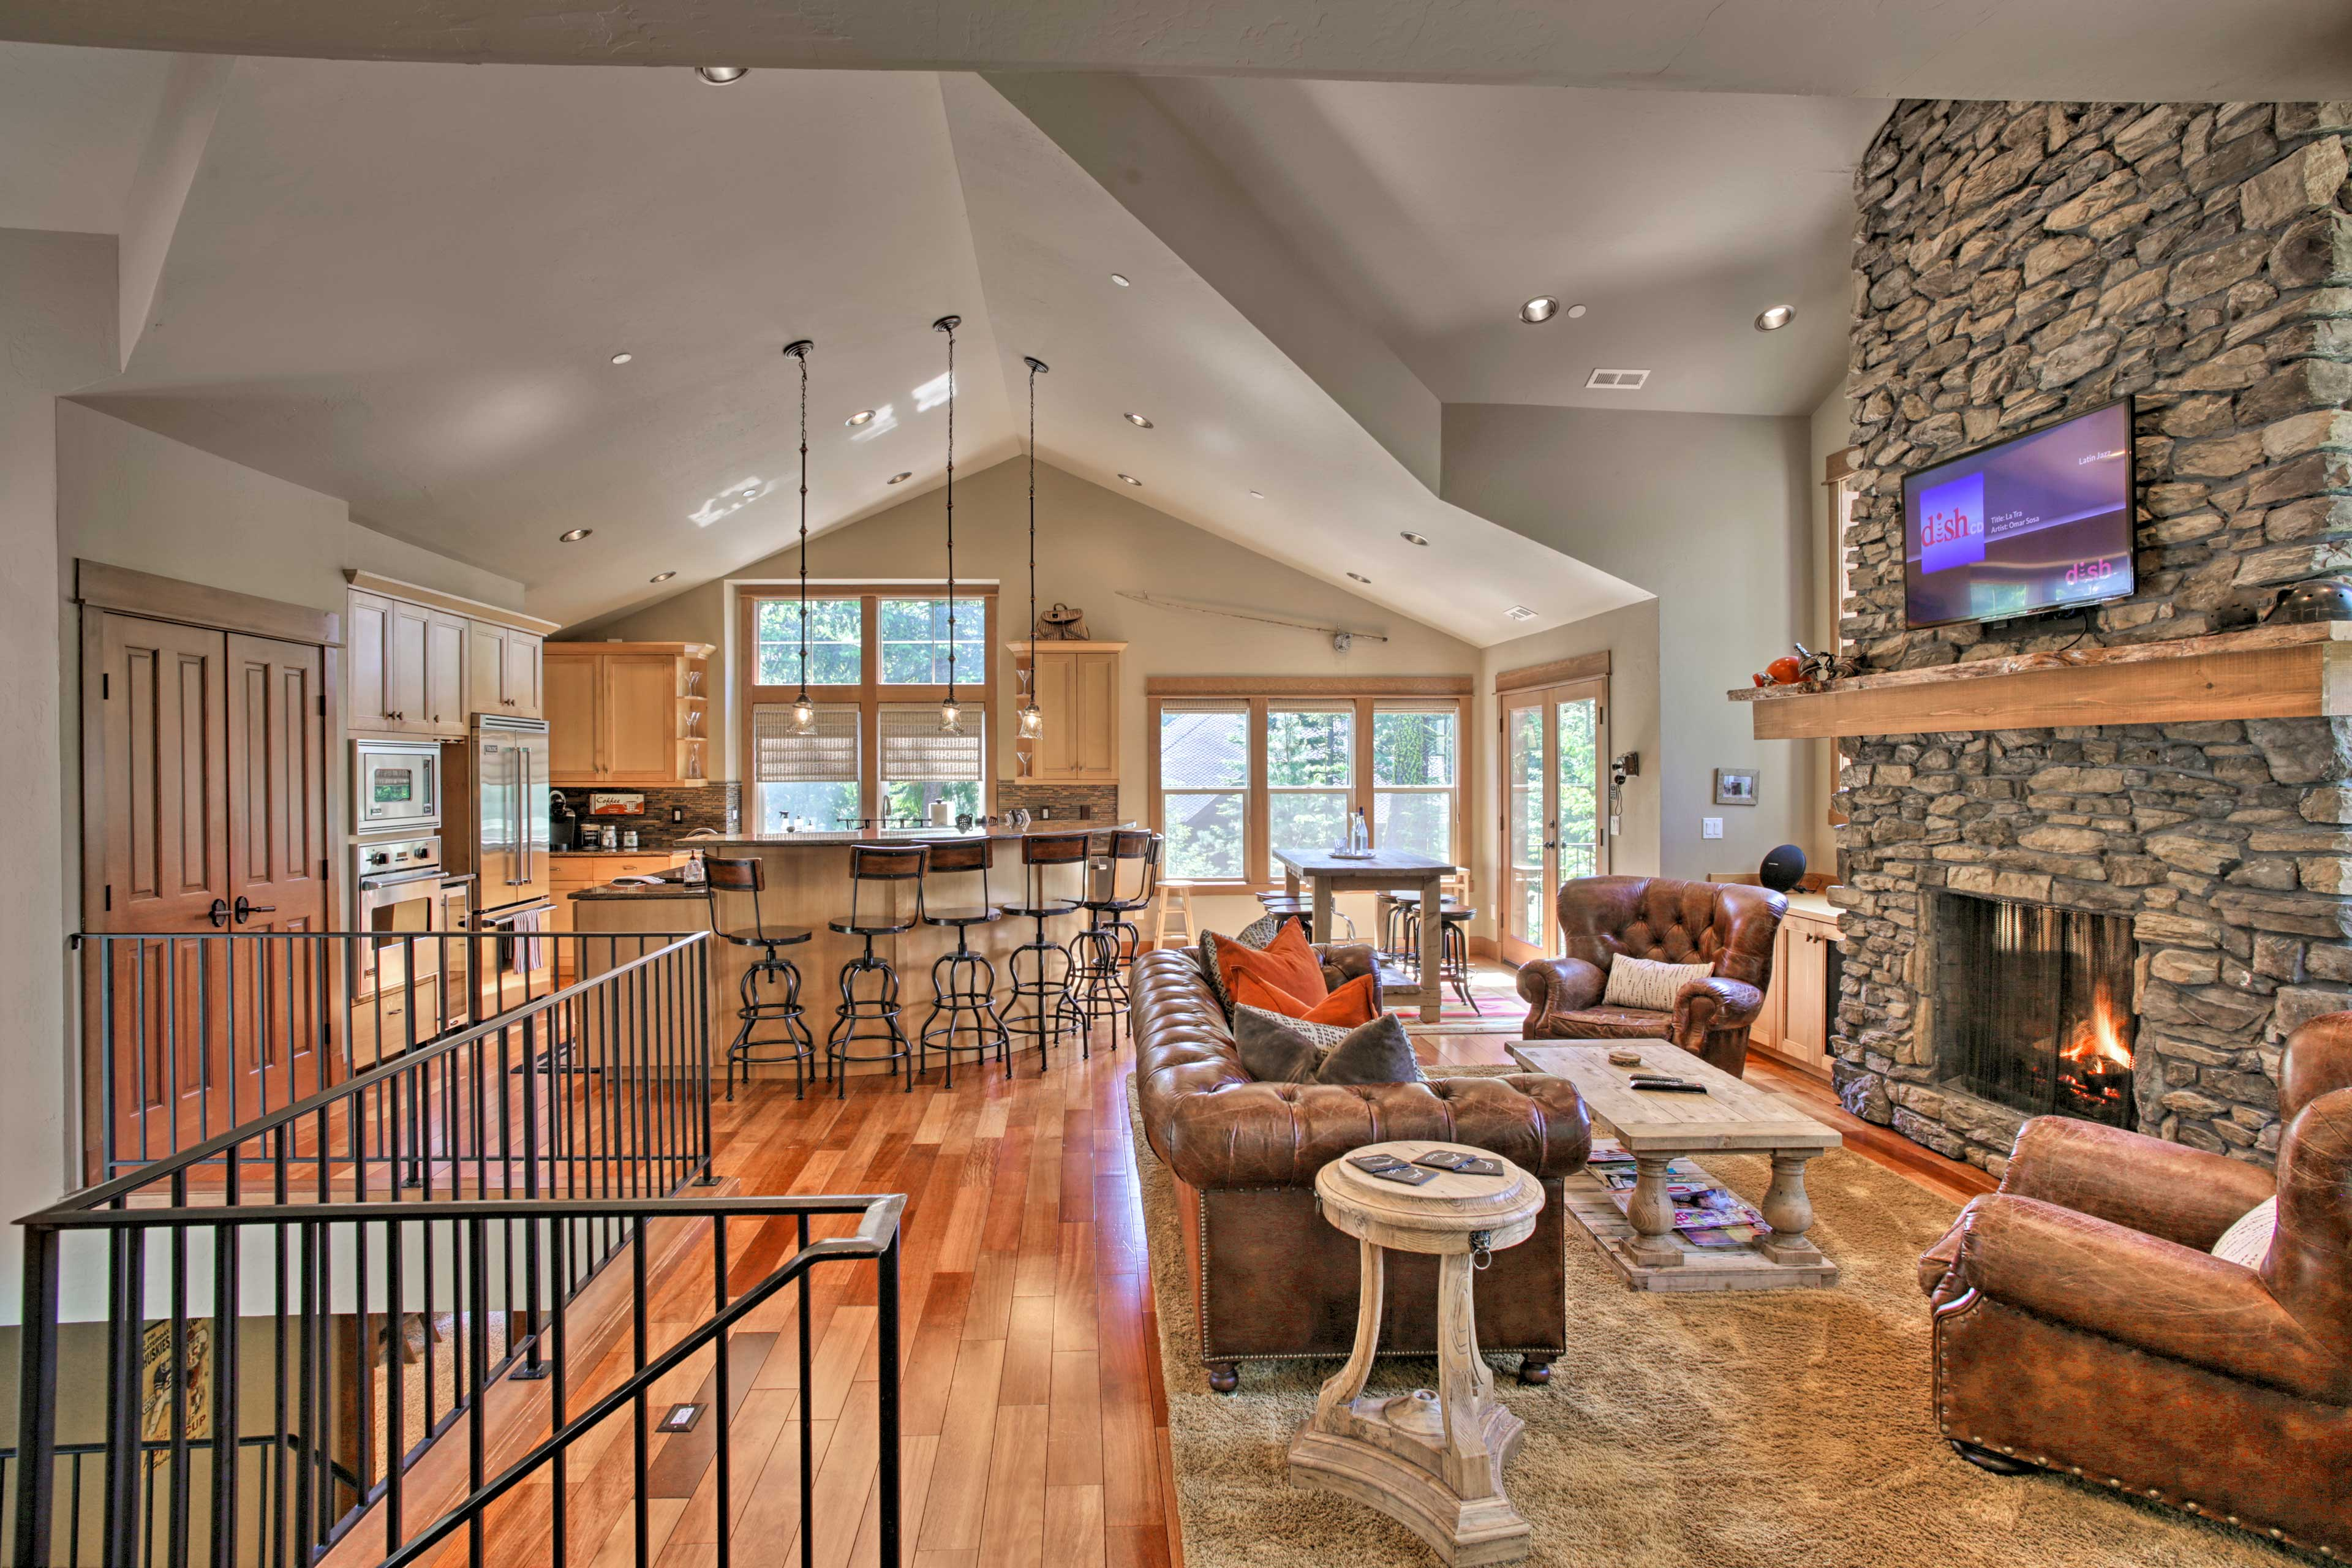 High ceilings mark the interior of this 2,800-square-foot house